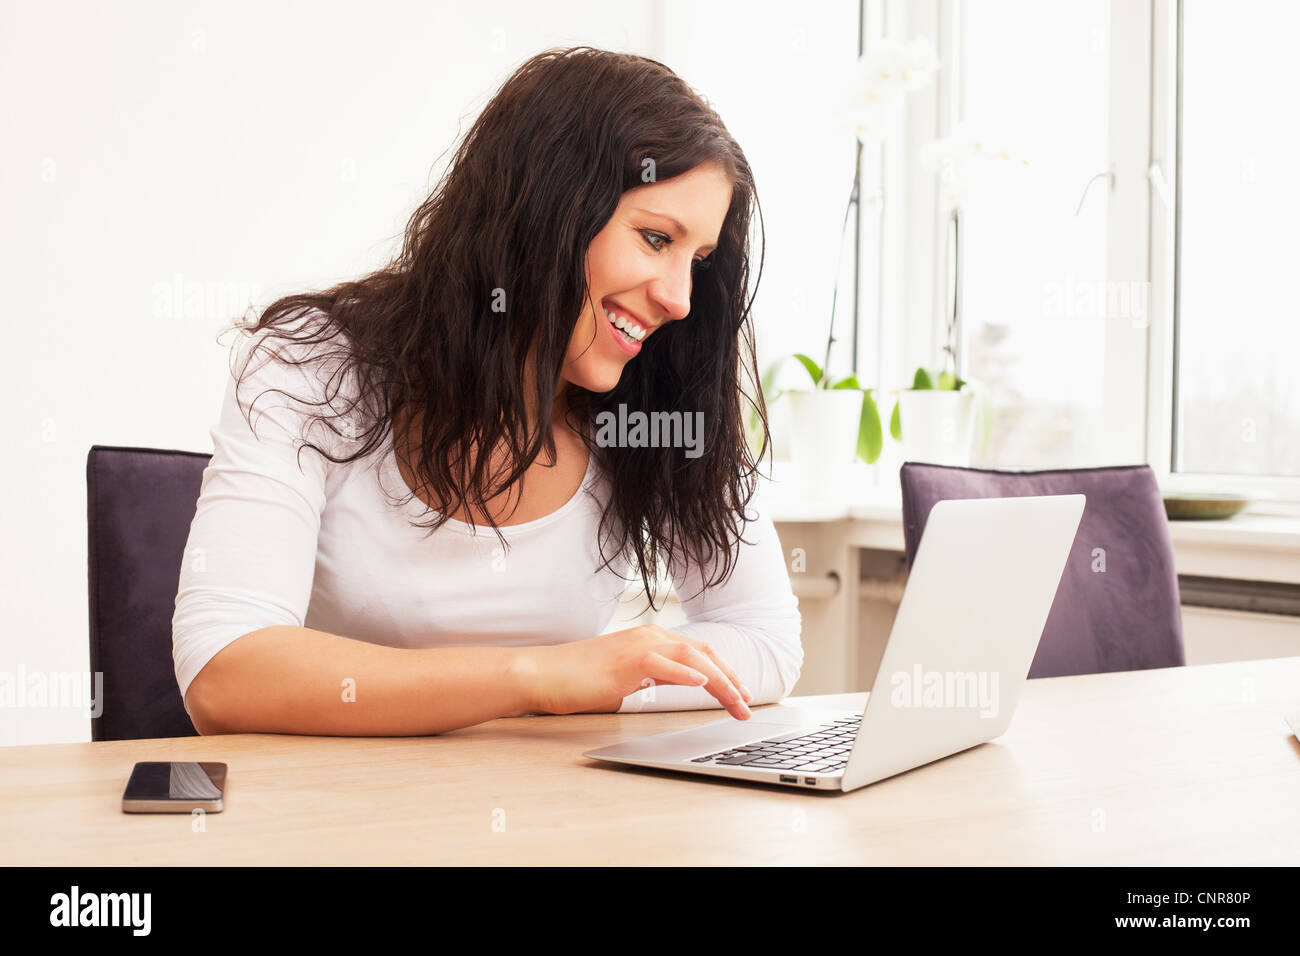 online female chatting